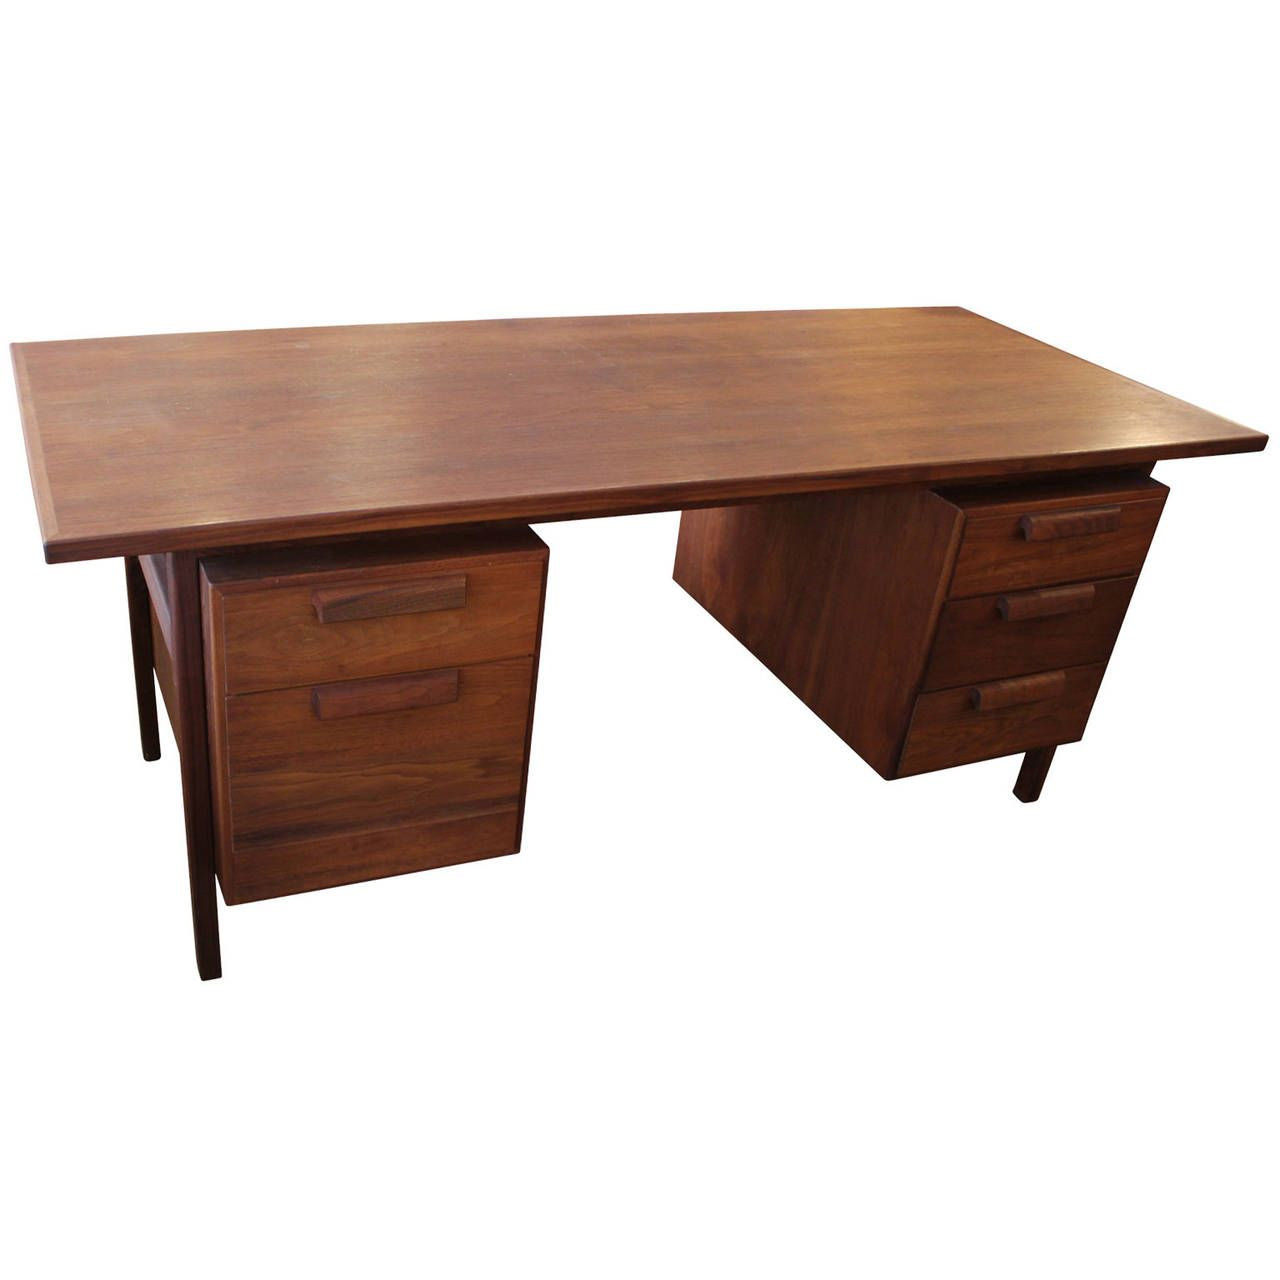 Splendid Walnut Executive Desk By Jens Risom From A Unique Collection Of Antique And Modern Desks And Writing Tables At Https Desk Executive Desk Modern Desk